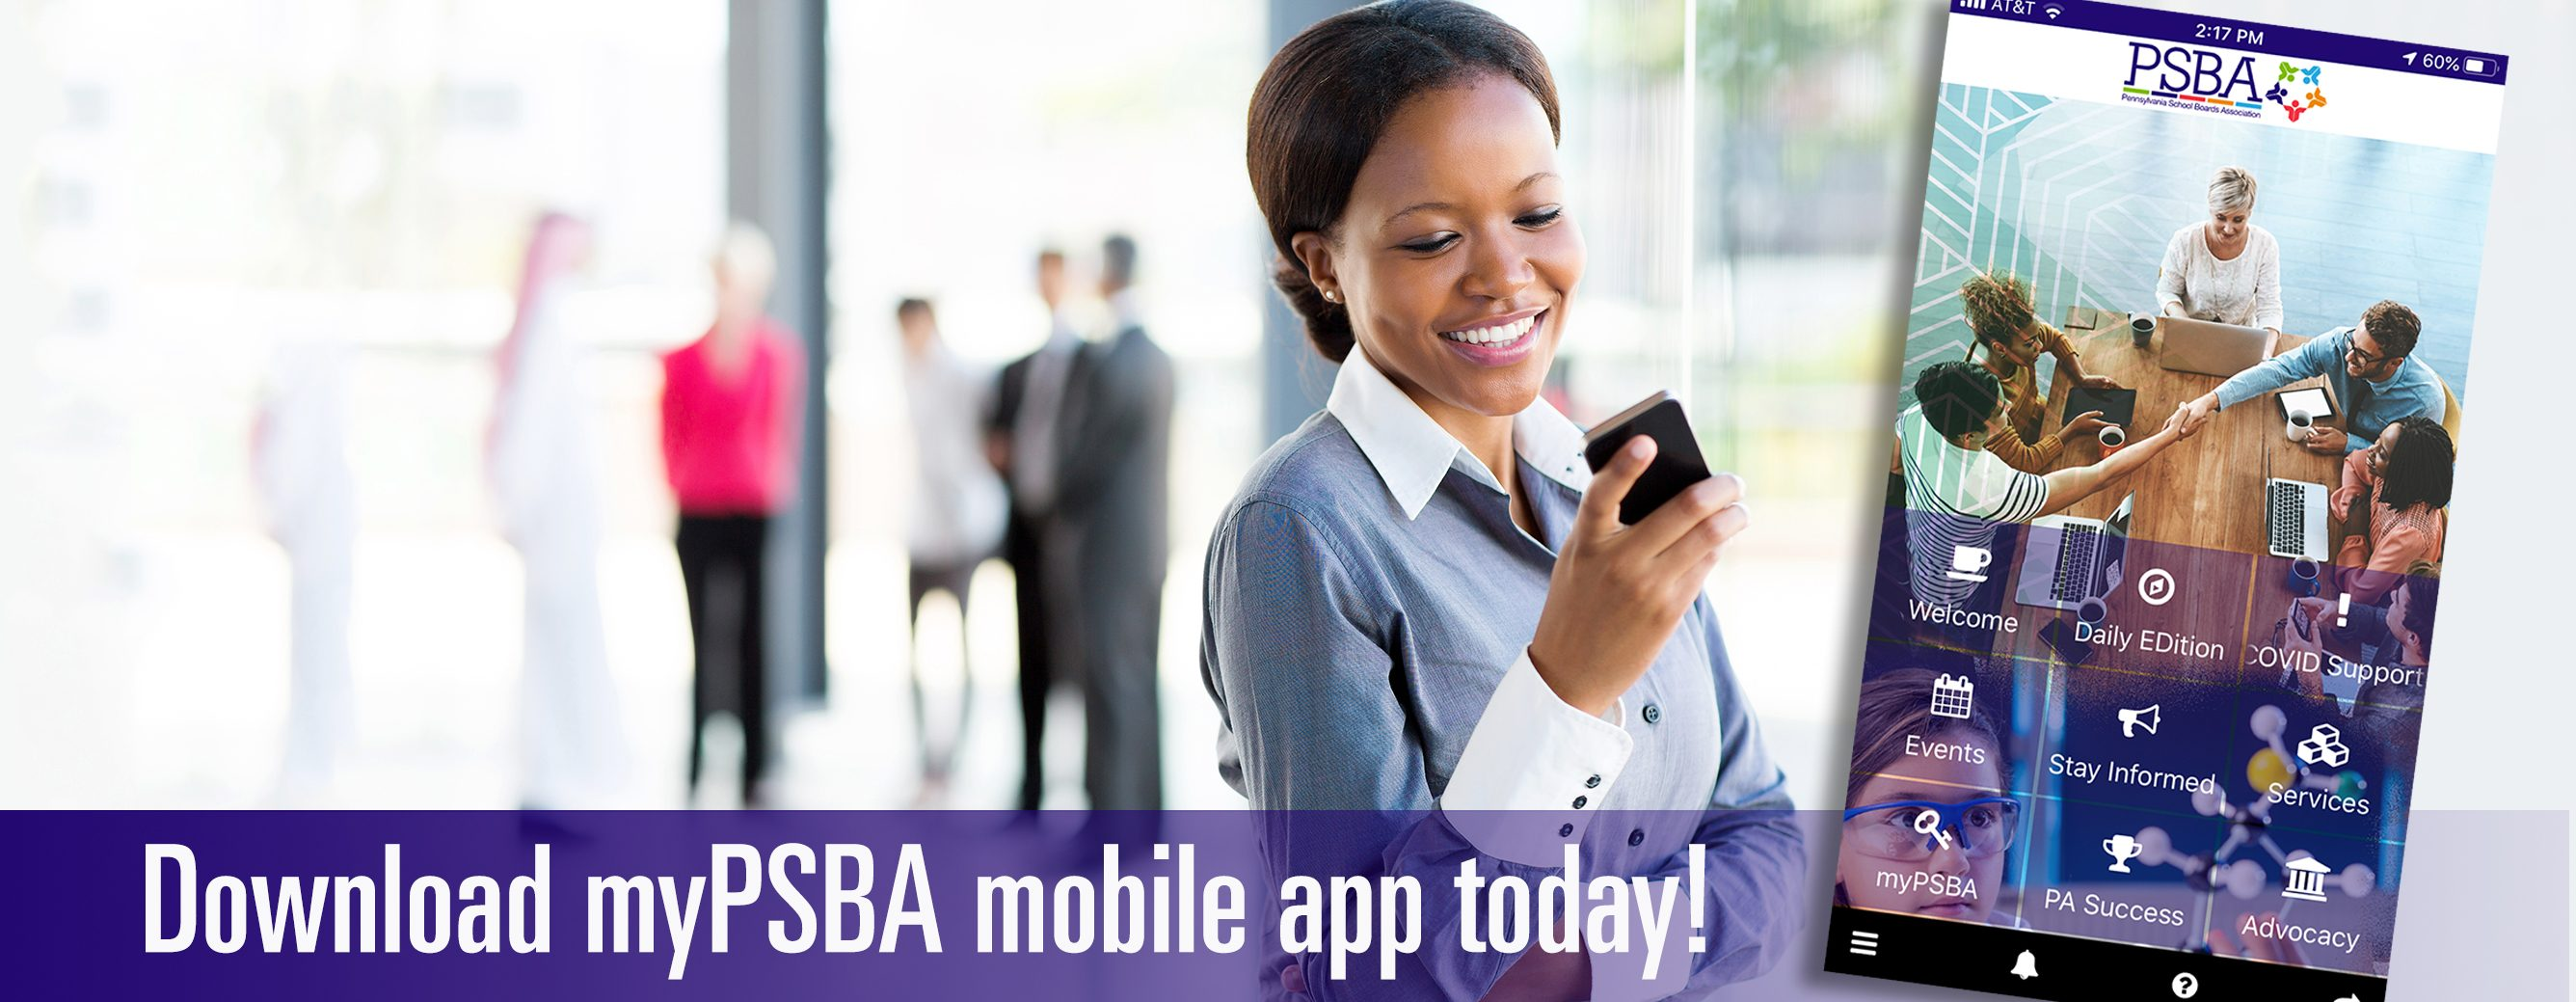 Download the myPSBA mobile app